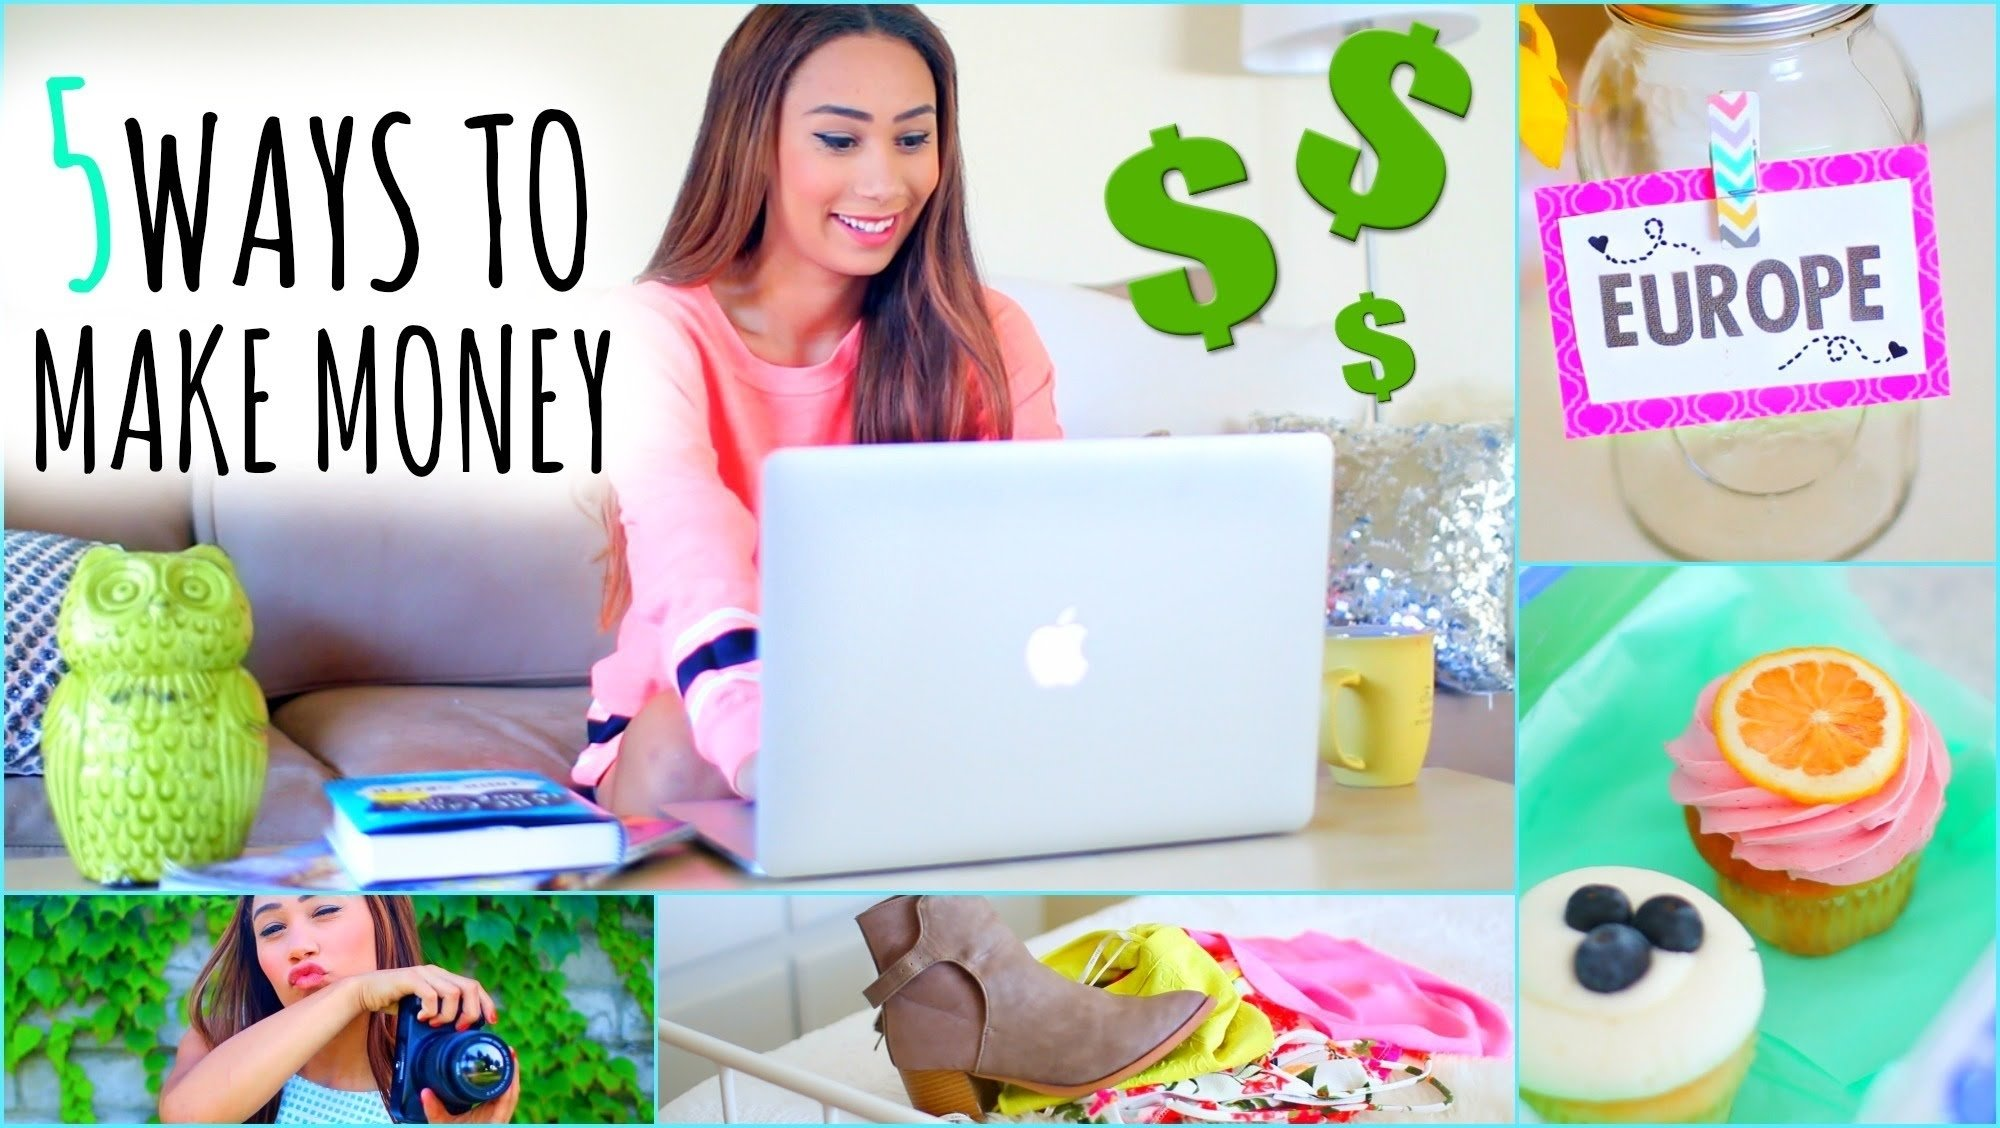 10 Stylish Money Making Ideas For Teenagers 5 ways to make money this summer e298bc on the internet youtube 2 2020